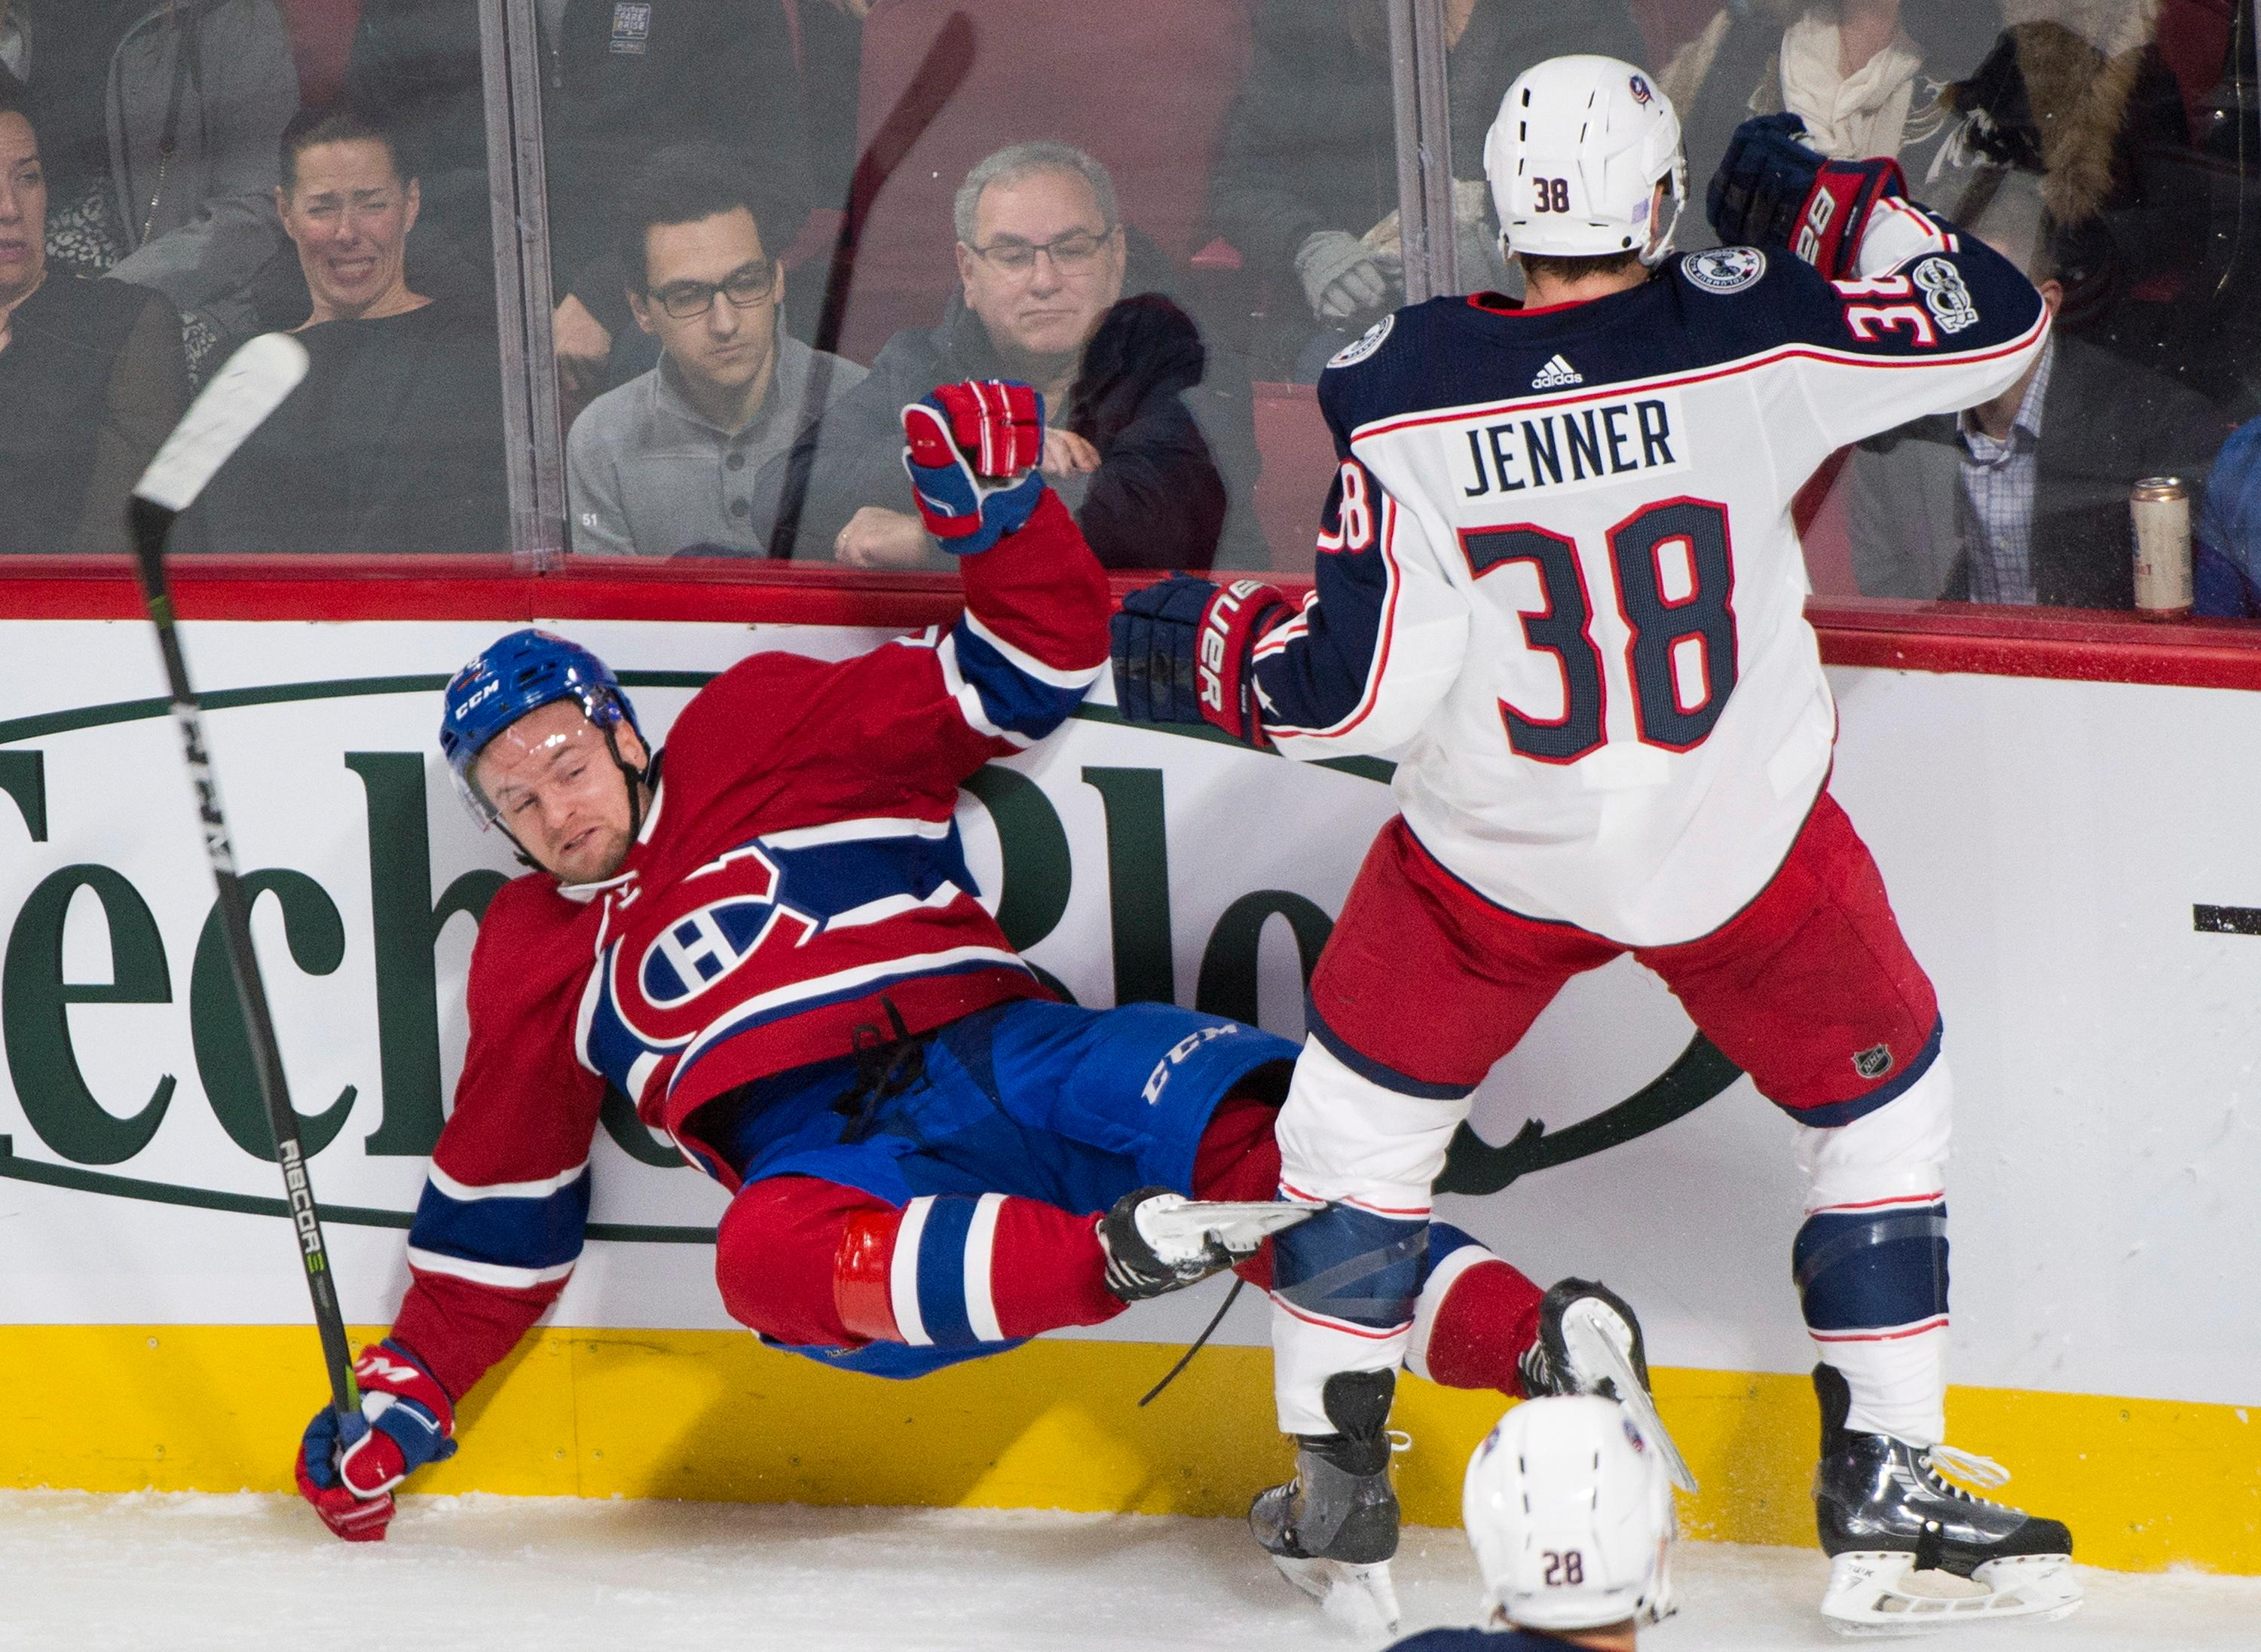 Montreal Canadiens' Jakub Jerabek is checked into the boards by Columbus Blue Jackets' Boone Jenner during first period NHL hockey action in Montreal, Monday, Nov. 27, 2017. (Graham Hughes/The Canadian Press via AP)